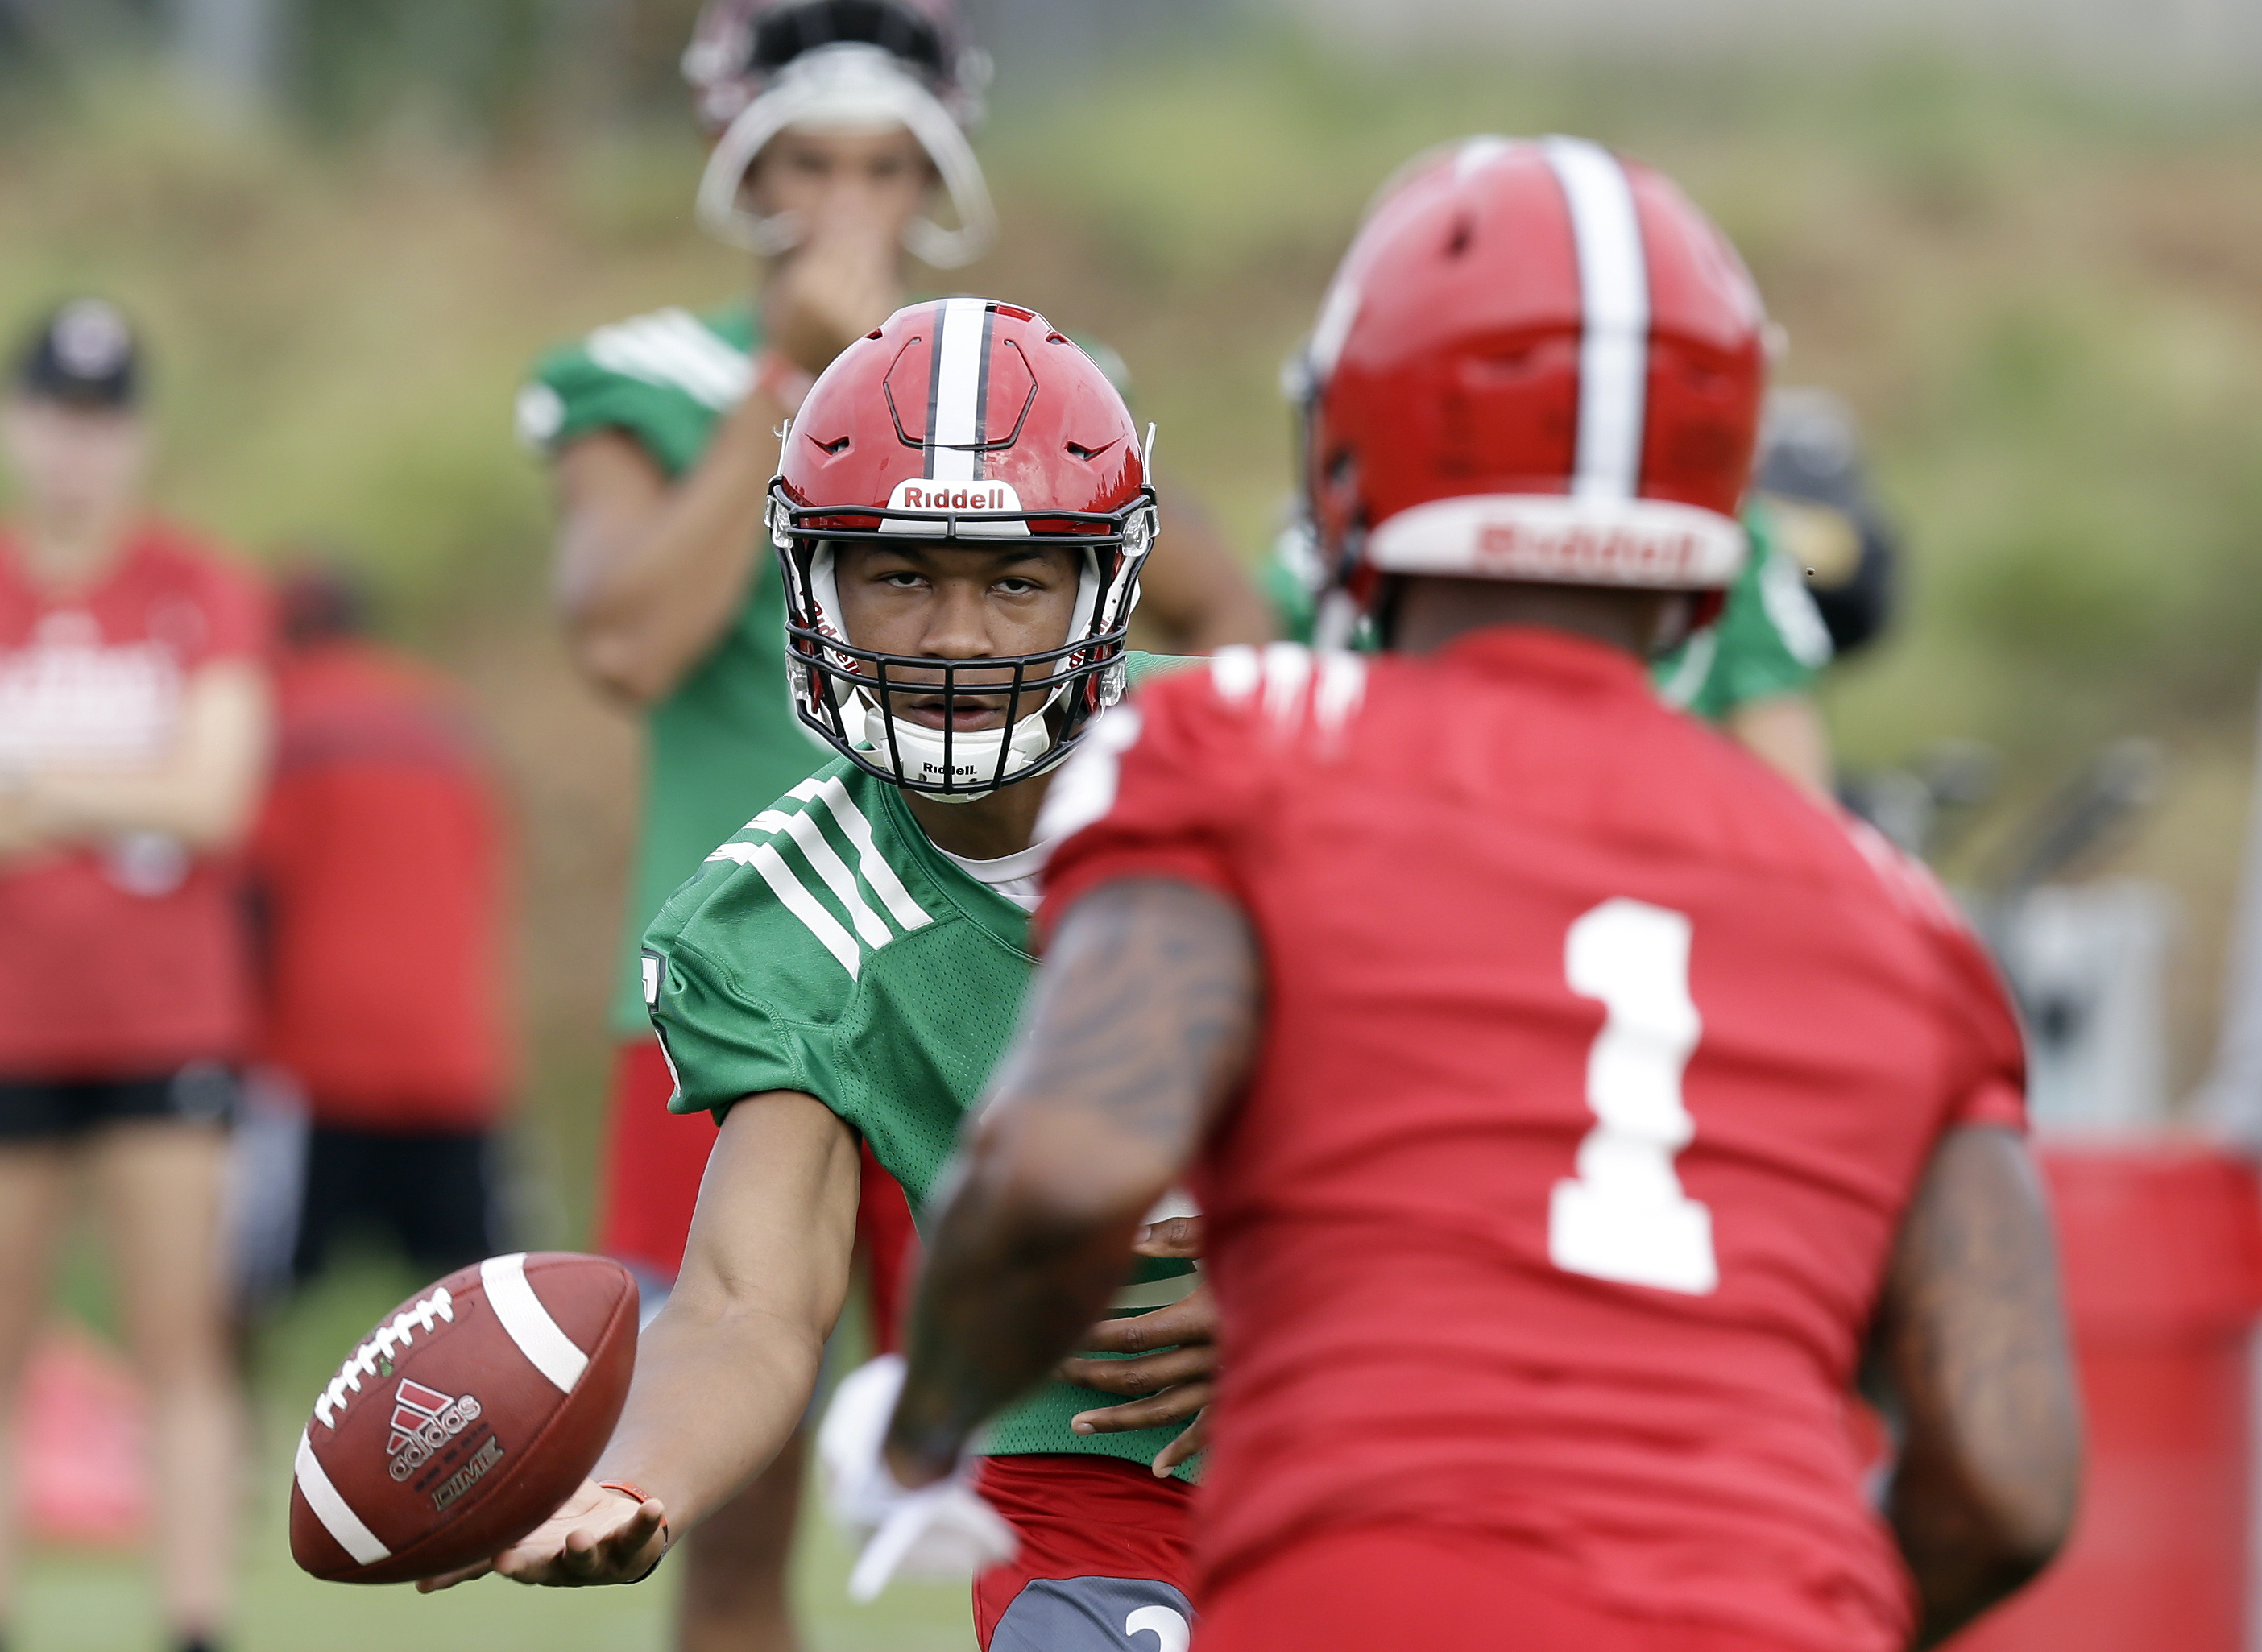 In this photo taken Monday, Aug. 1, 2016 North Carolina State quarterback Jalan McClendon tosses the ball to Jaylen Samuels (1) during an NCAA college football practice in Raleigh, N.C. (AP Photo/Gerry Broome)